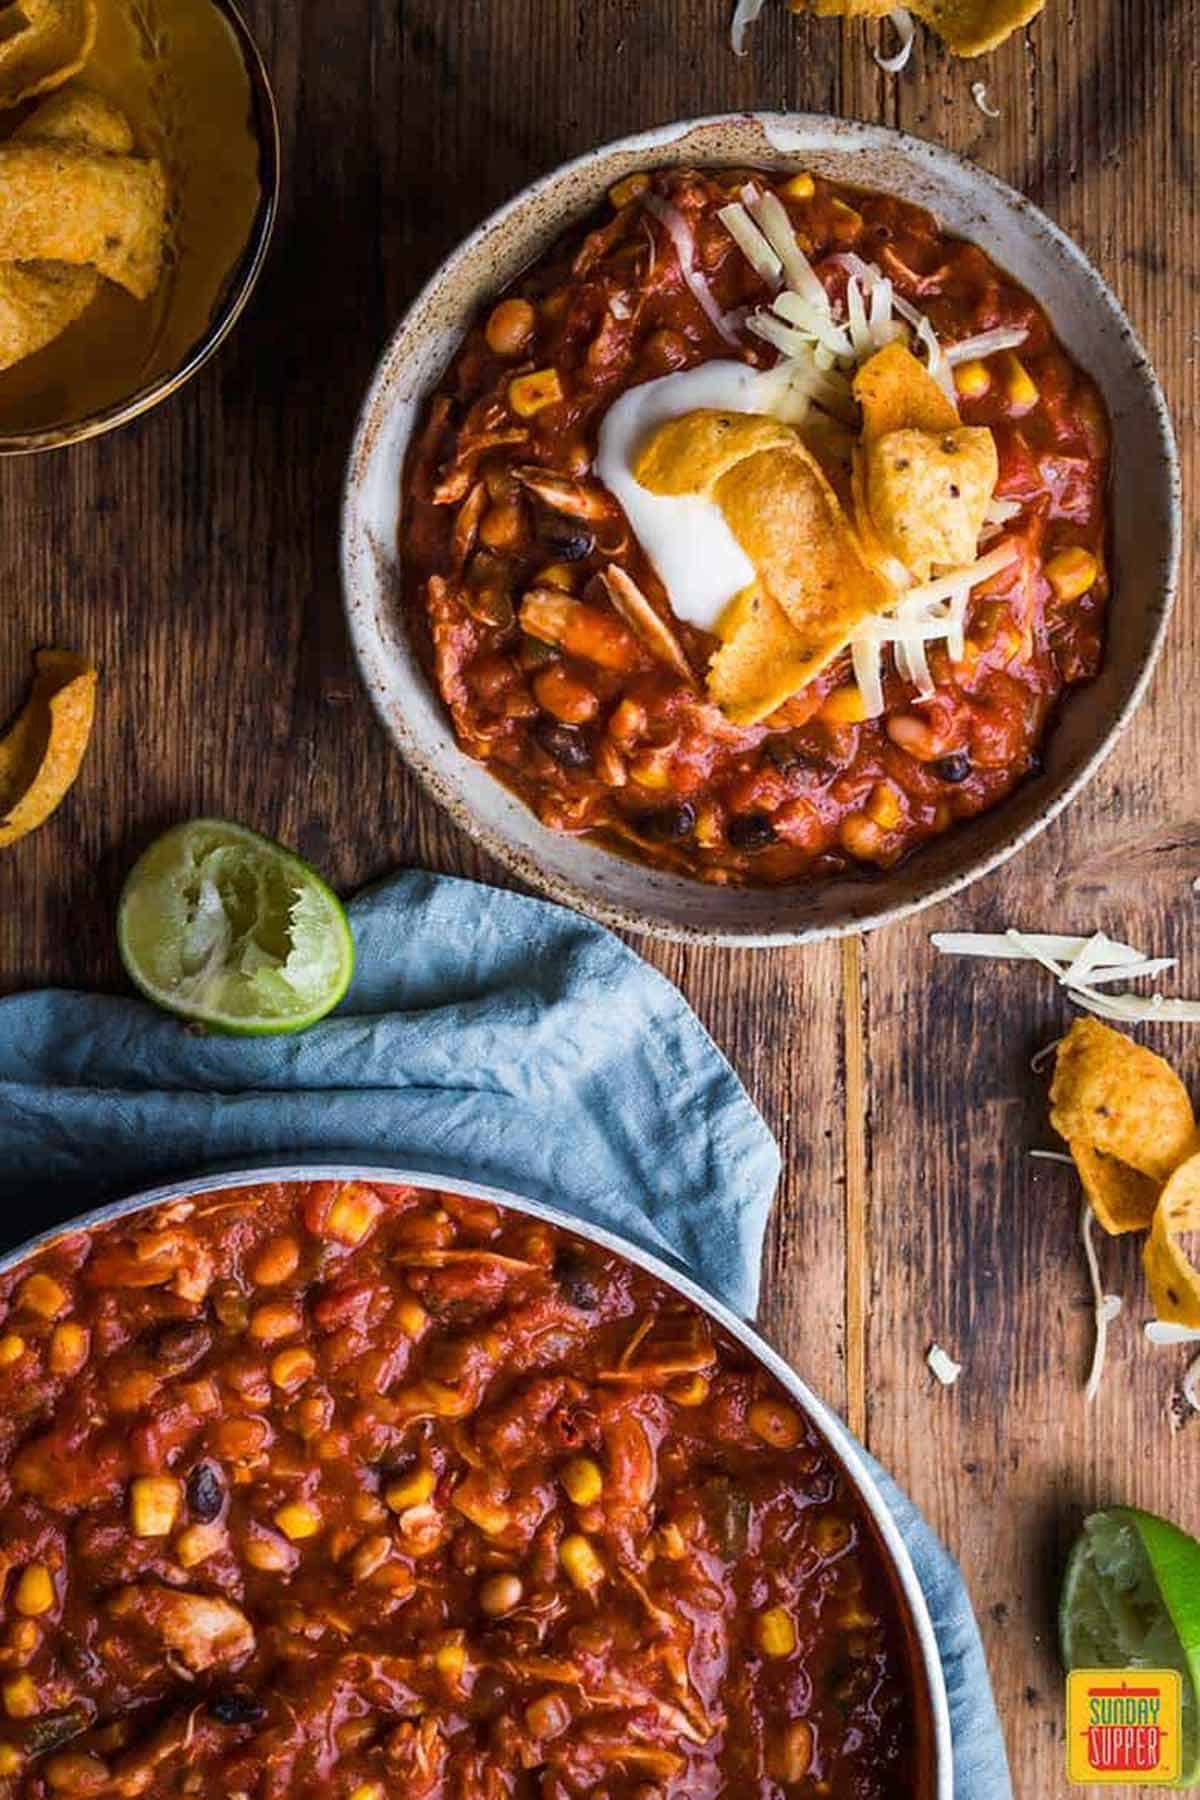 A bowl of chicken chili next to the skillet of chili - make ahead freezer meals